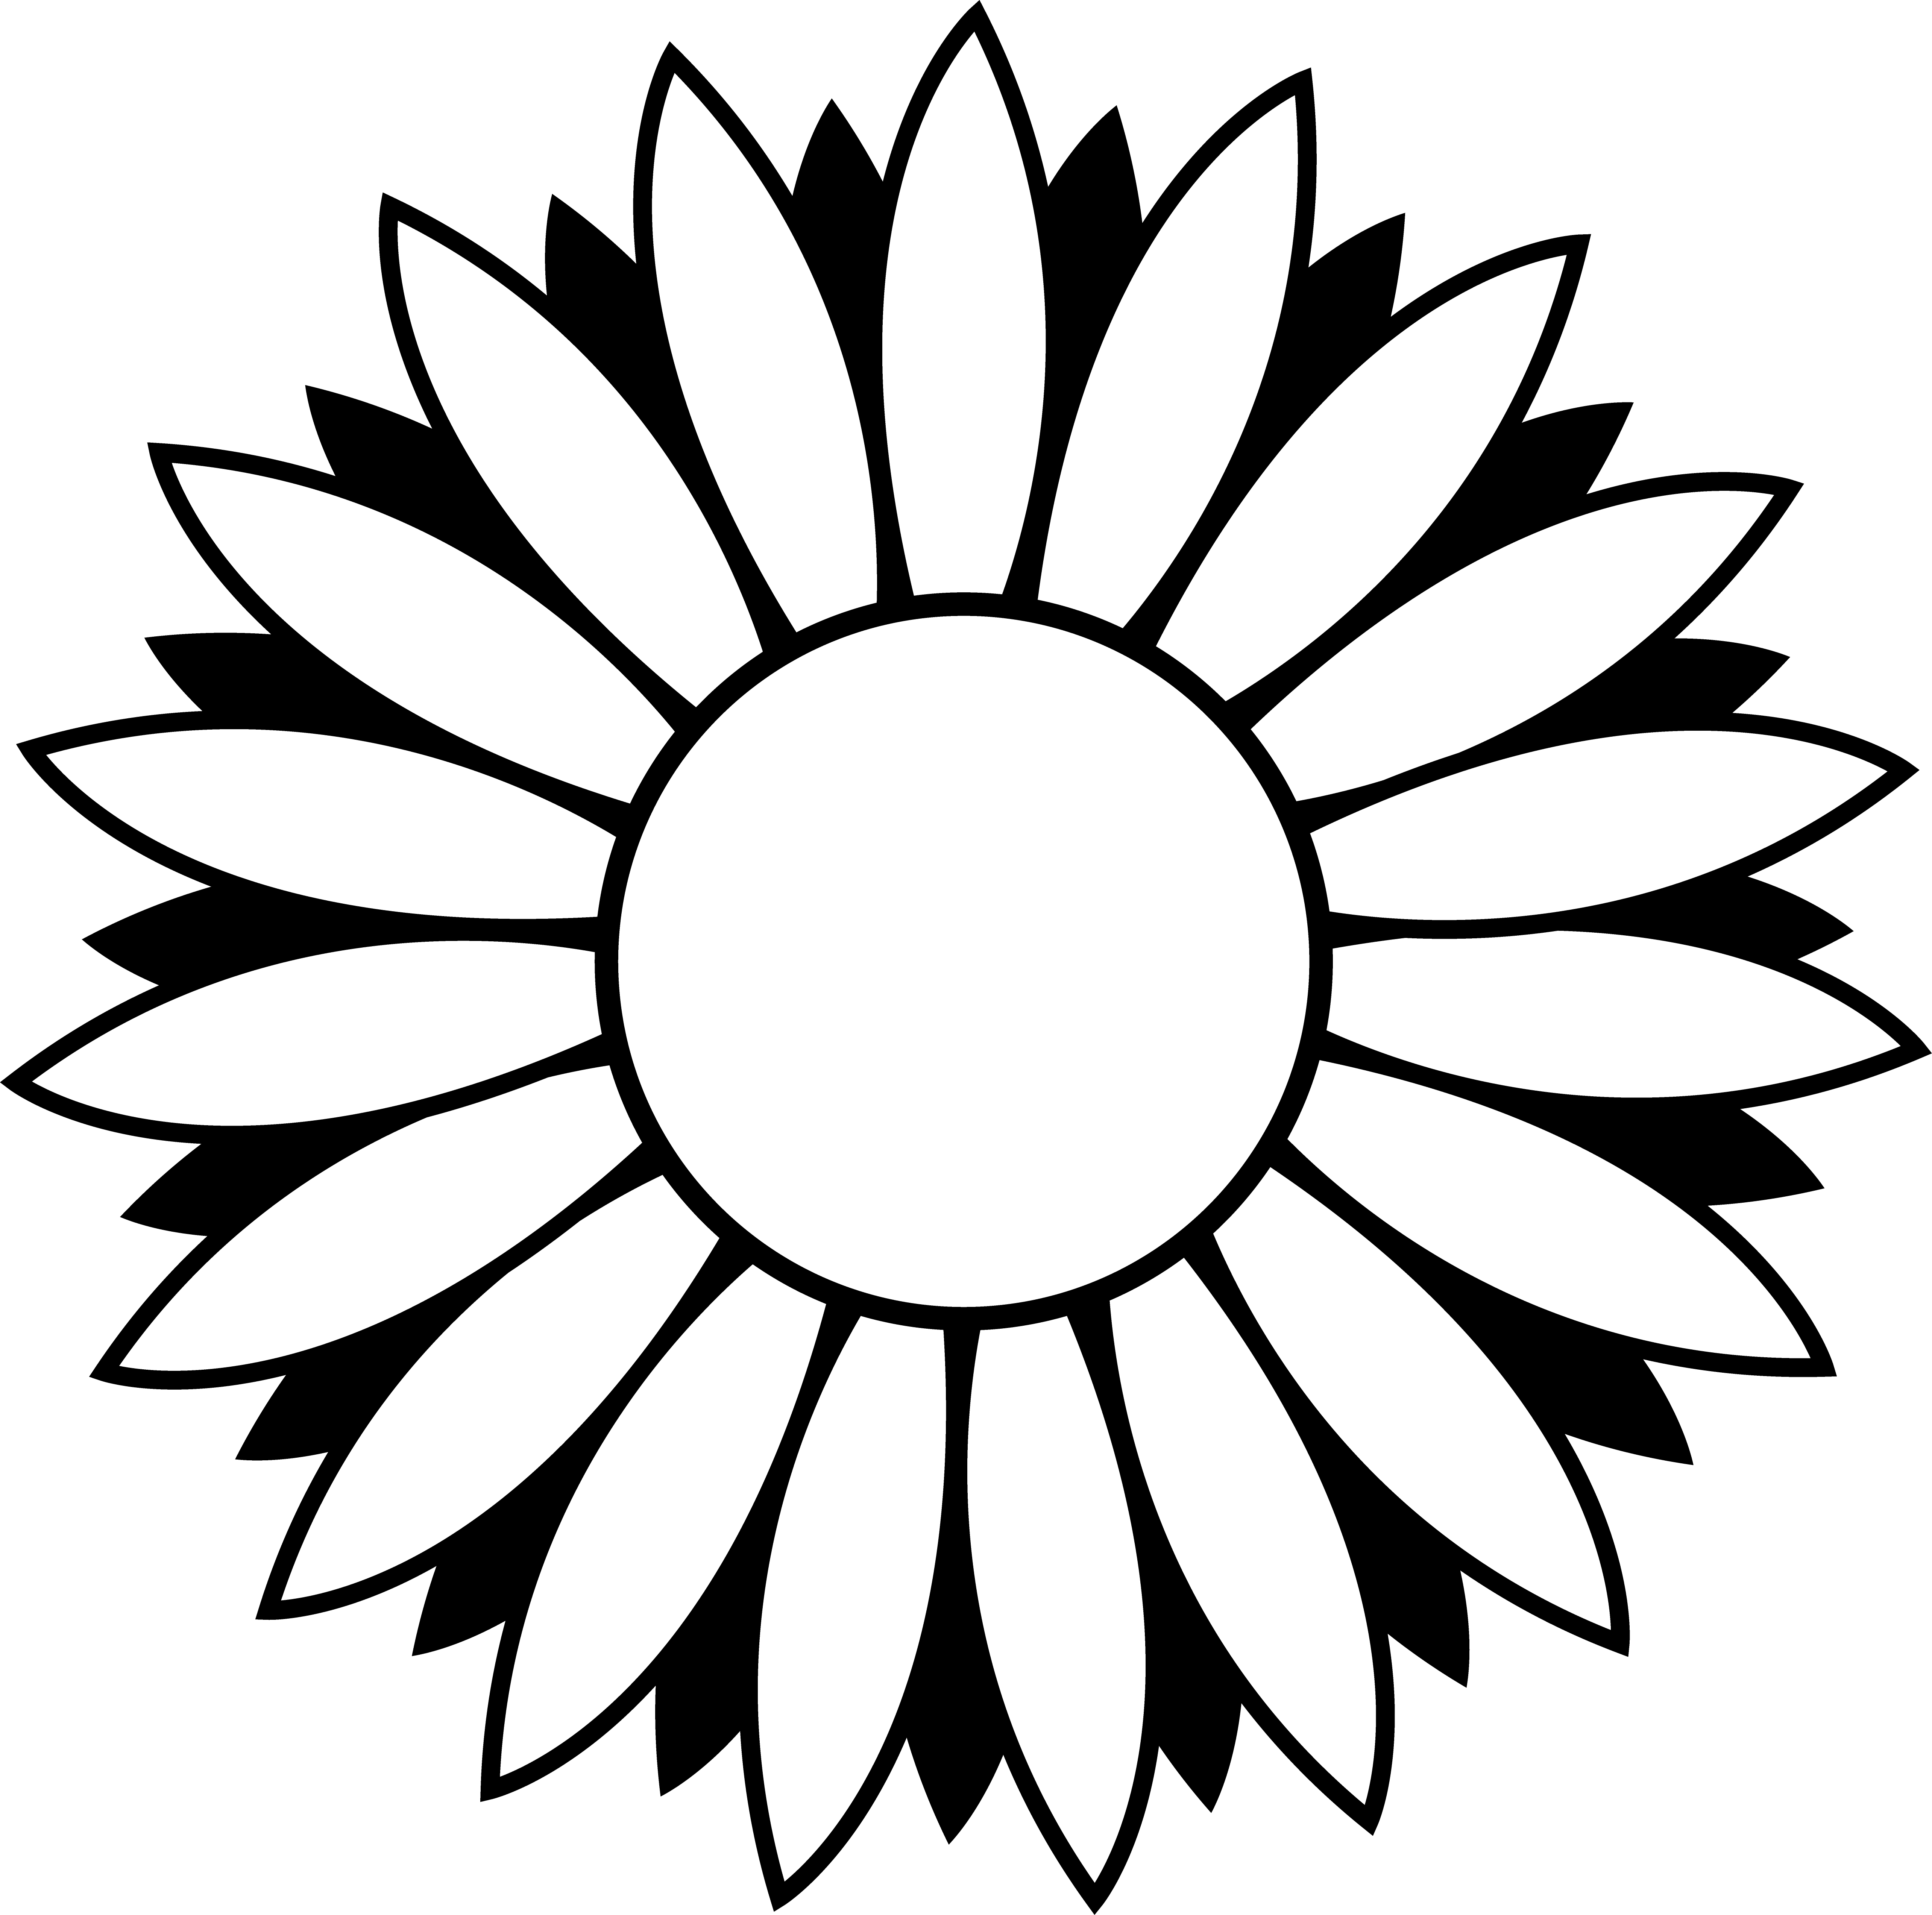 Free Black And White Flower Outline Download Free Clip